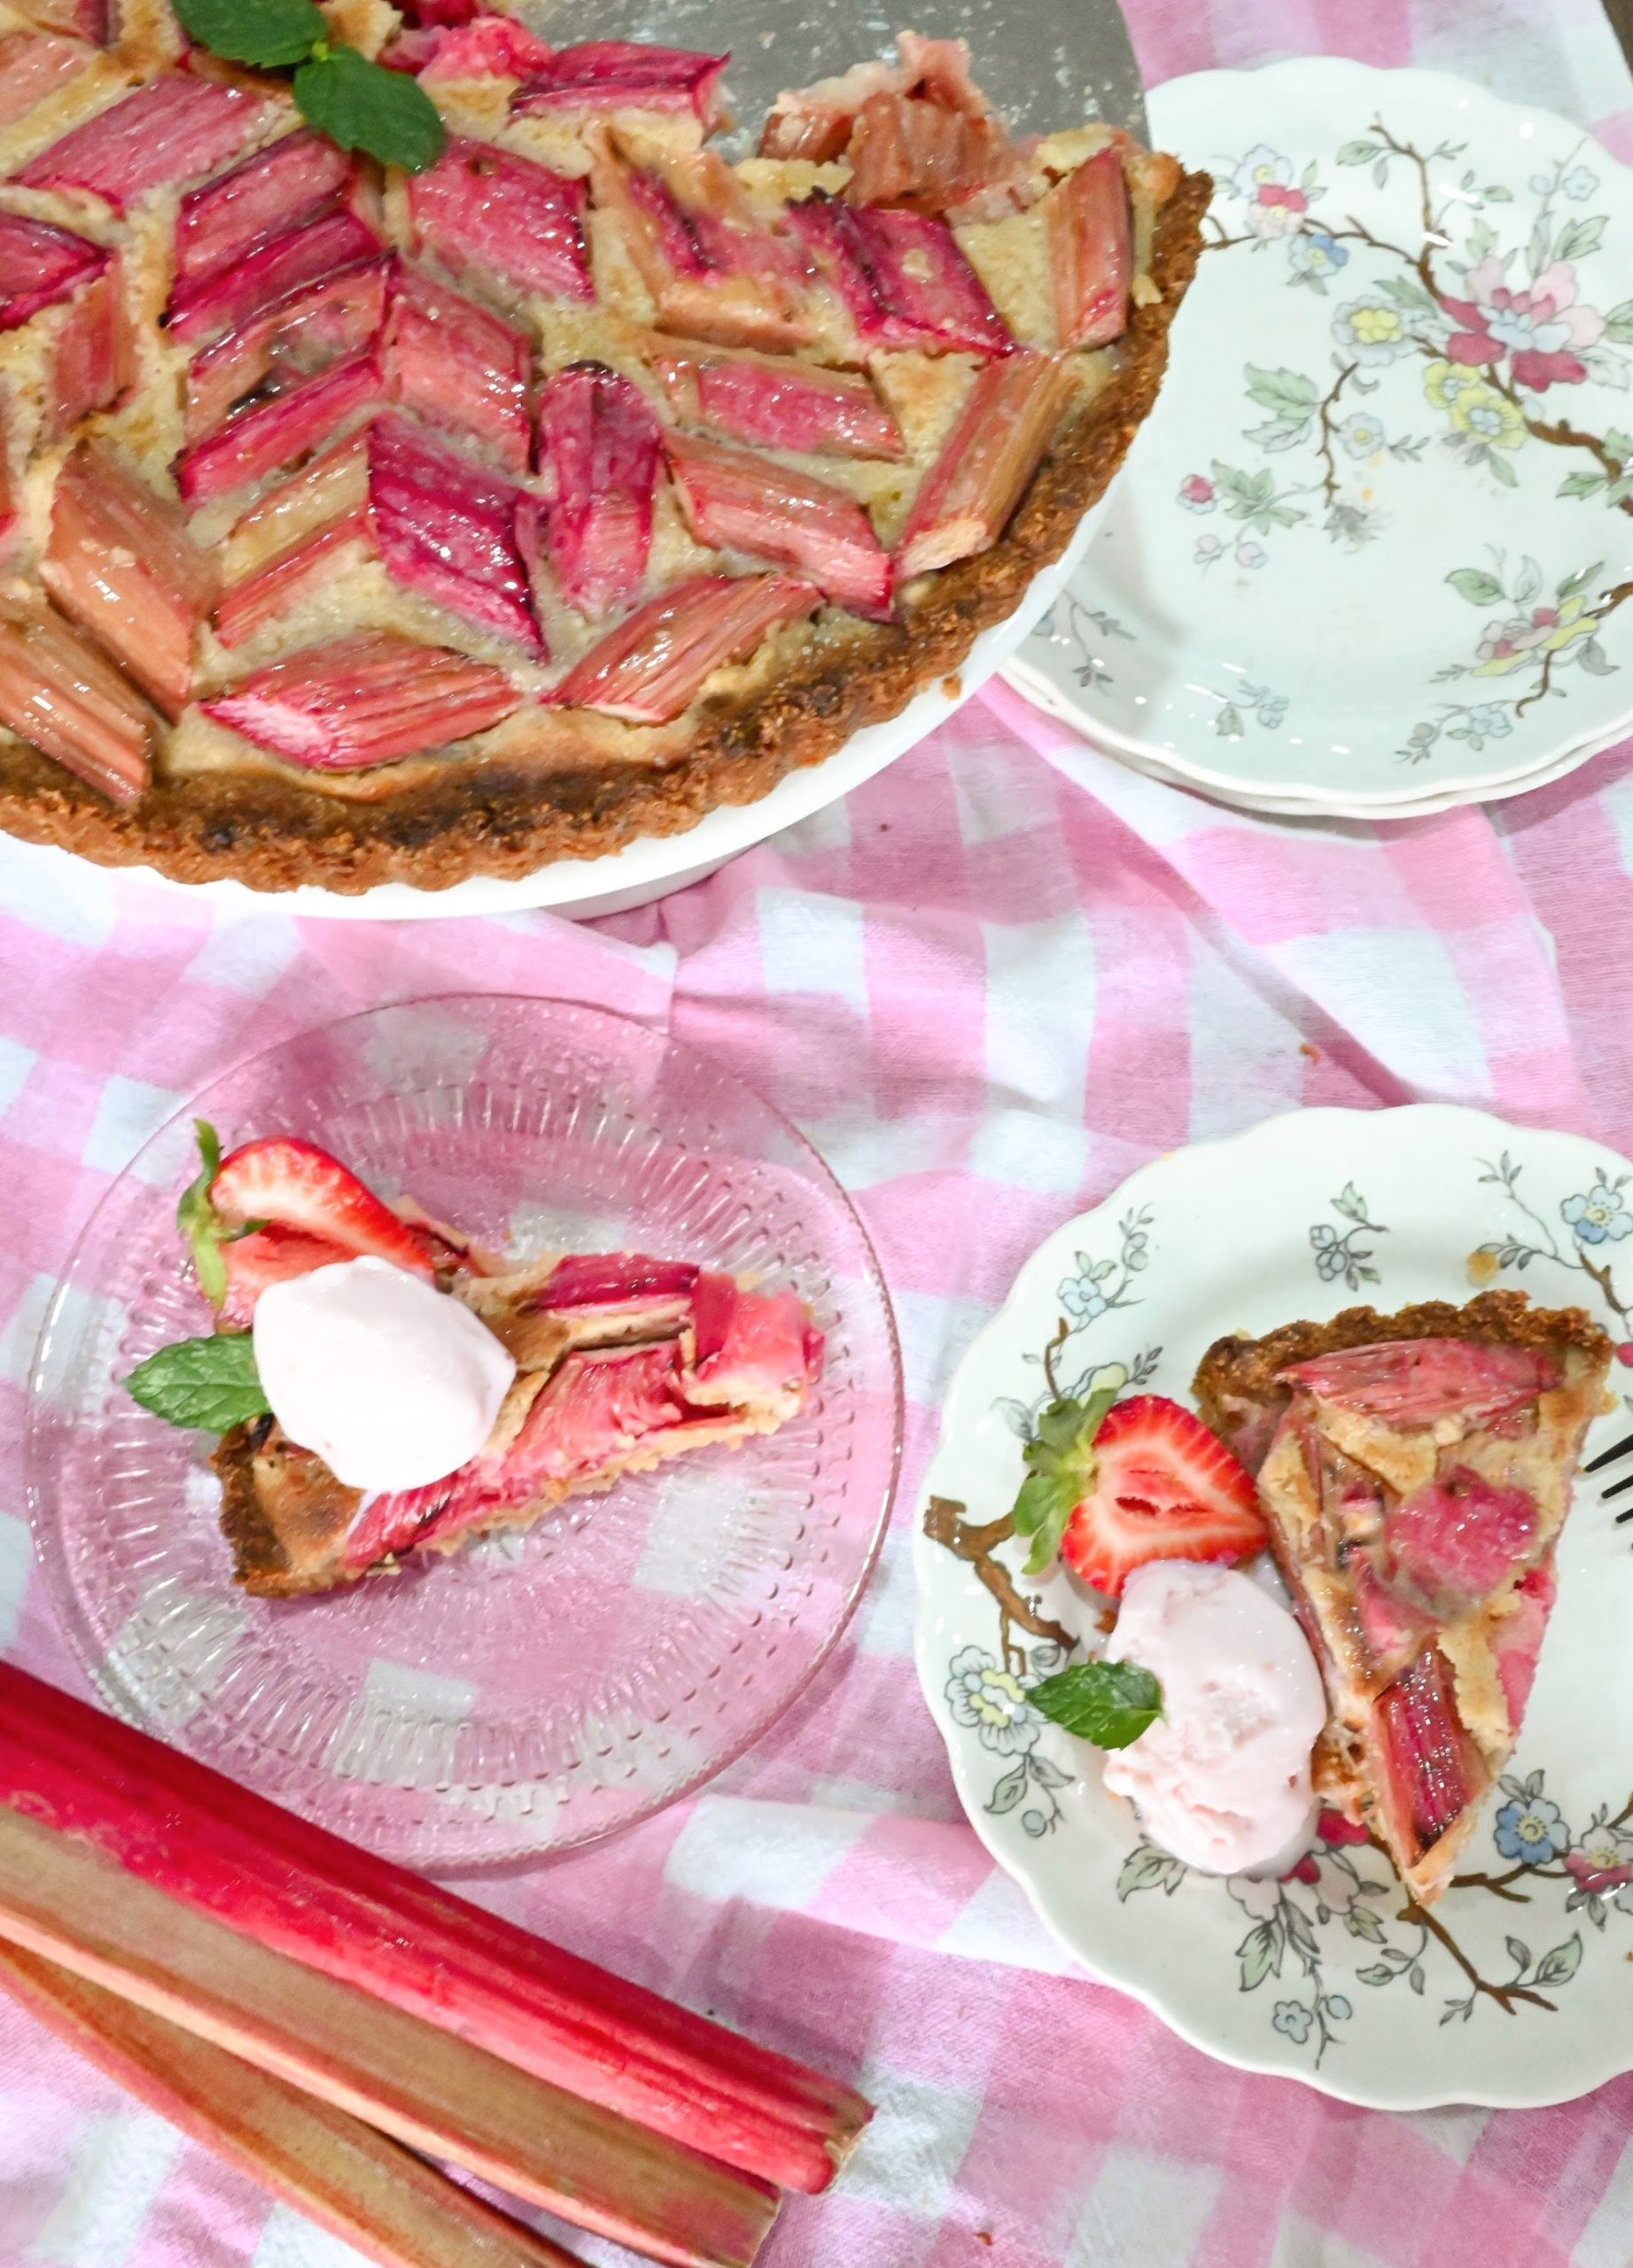 keto rhubarb tart on cake stand and sliced on a clear pink dish and floral white dish